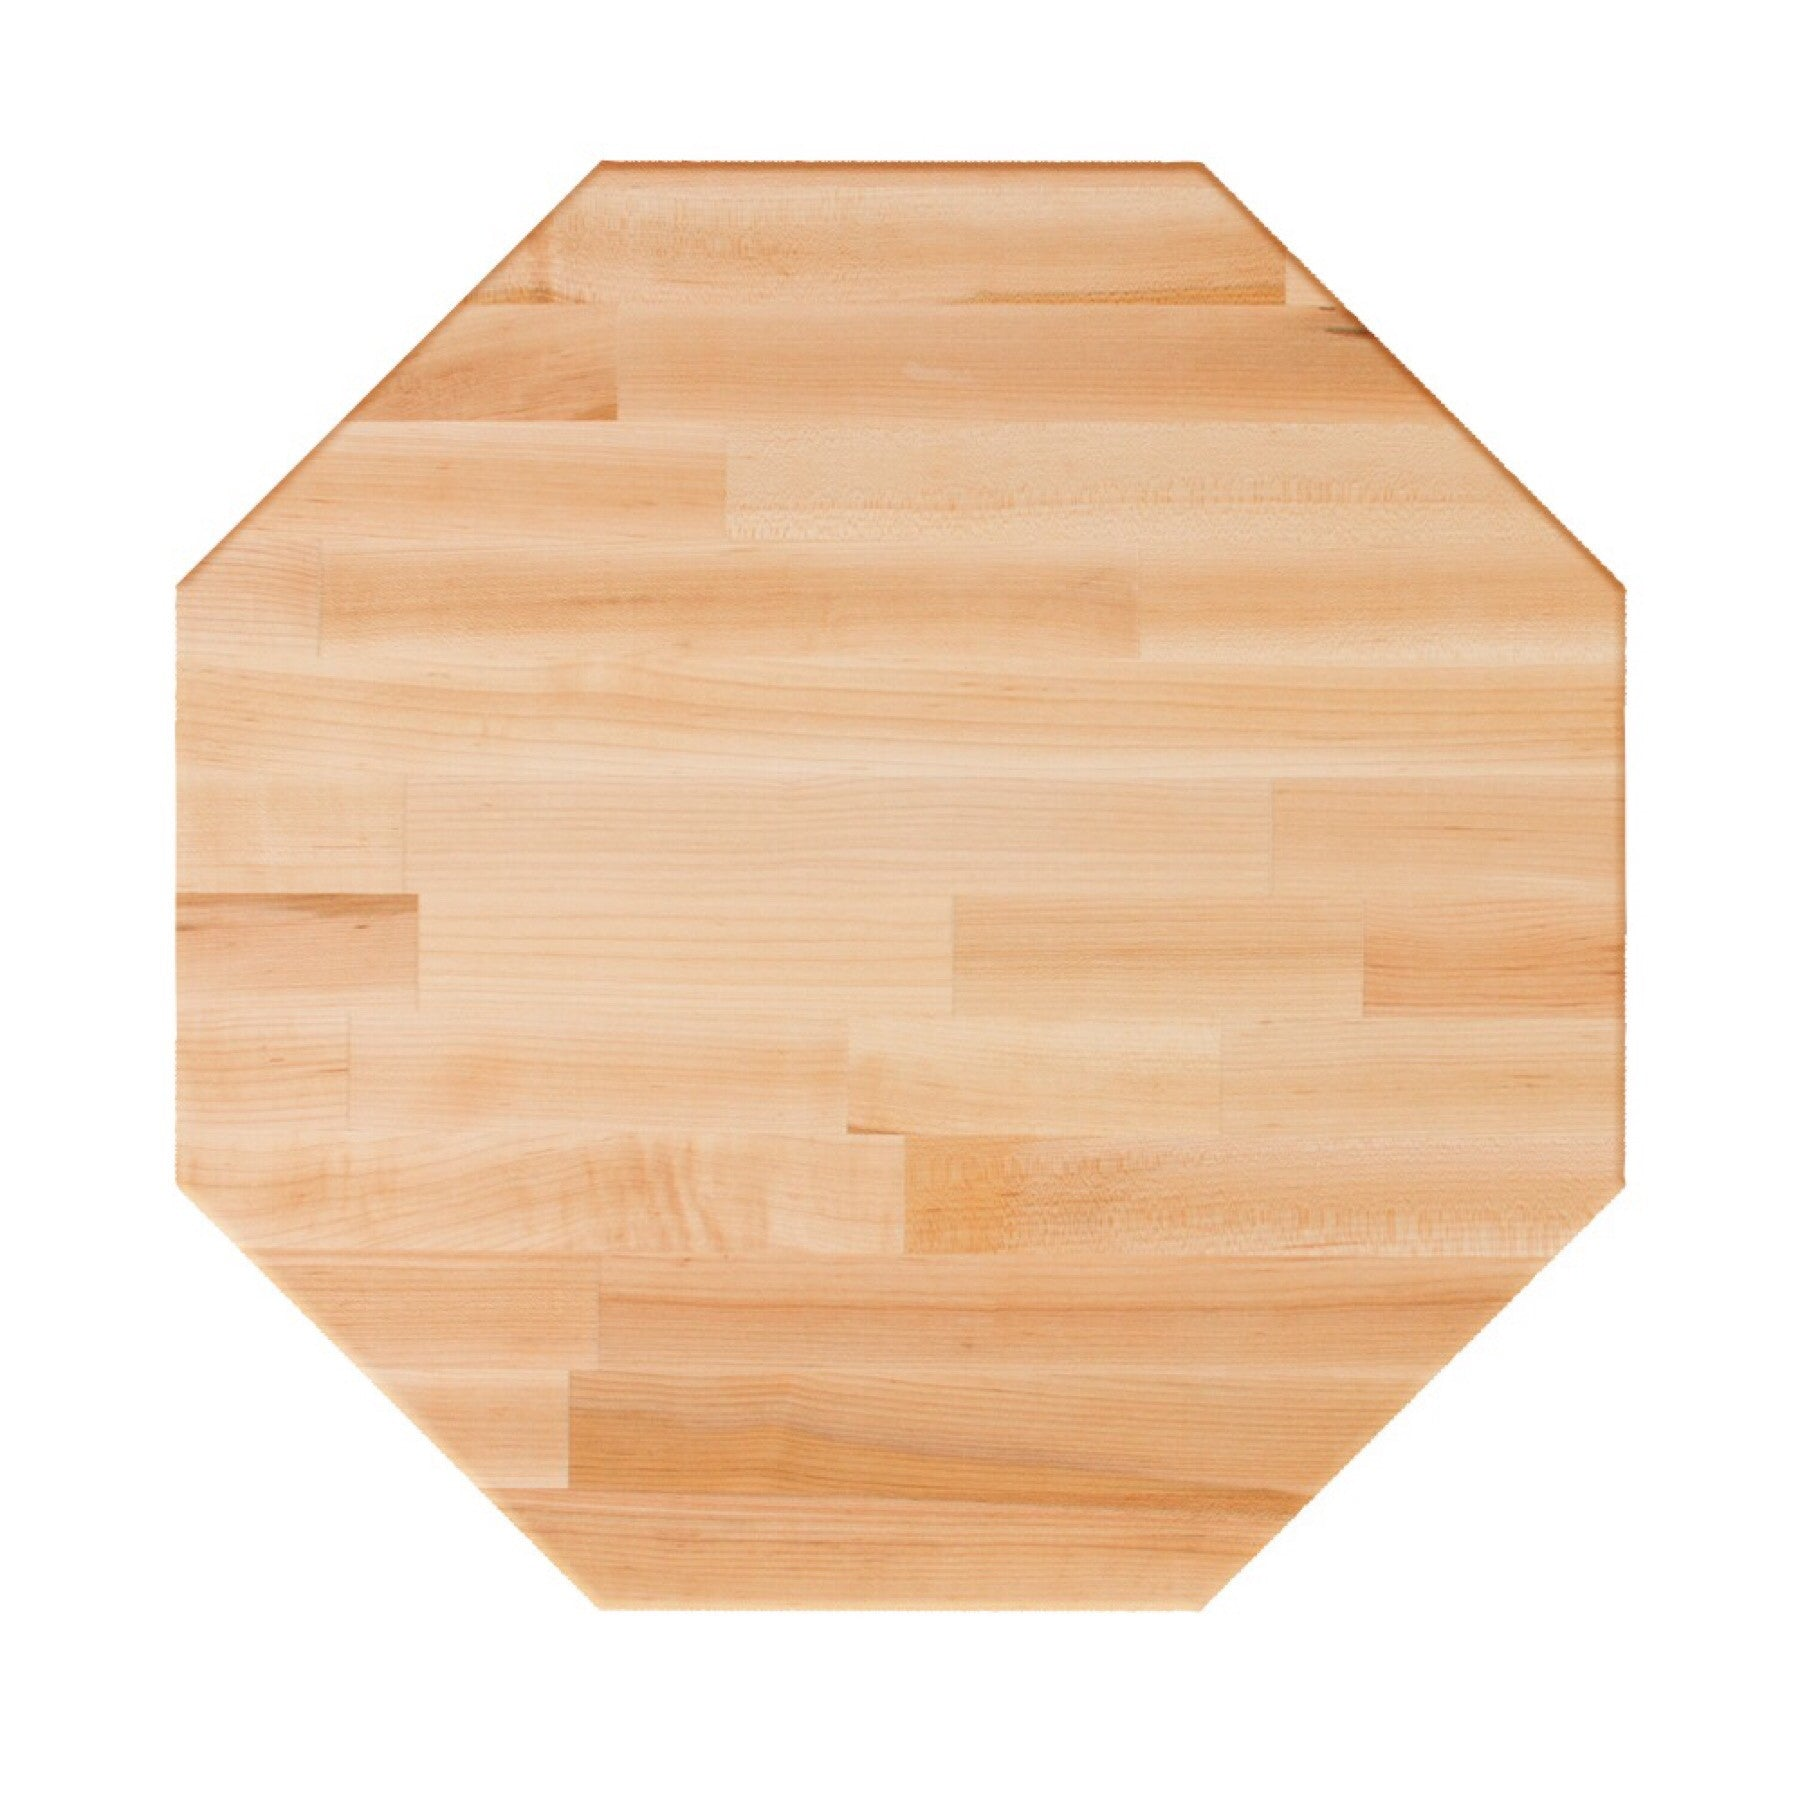 John Boos Octagonal RTM Blended Maple Butcher Block Table Top